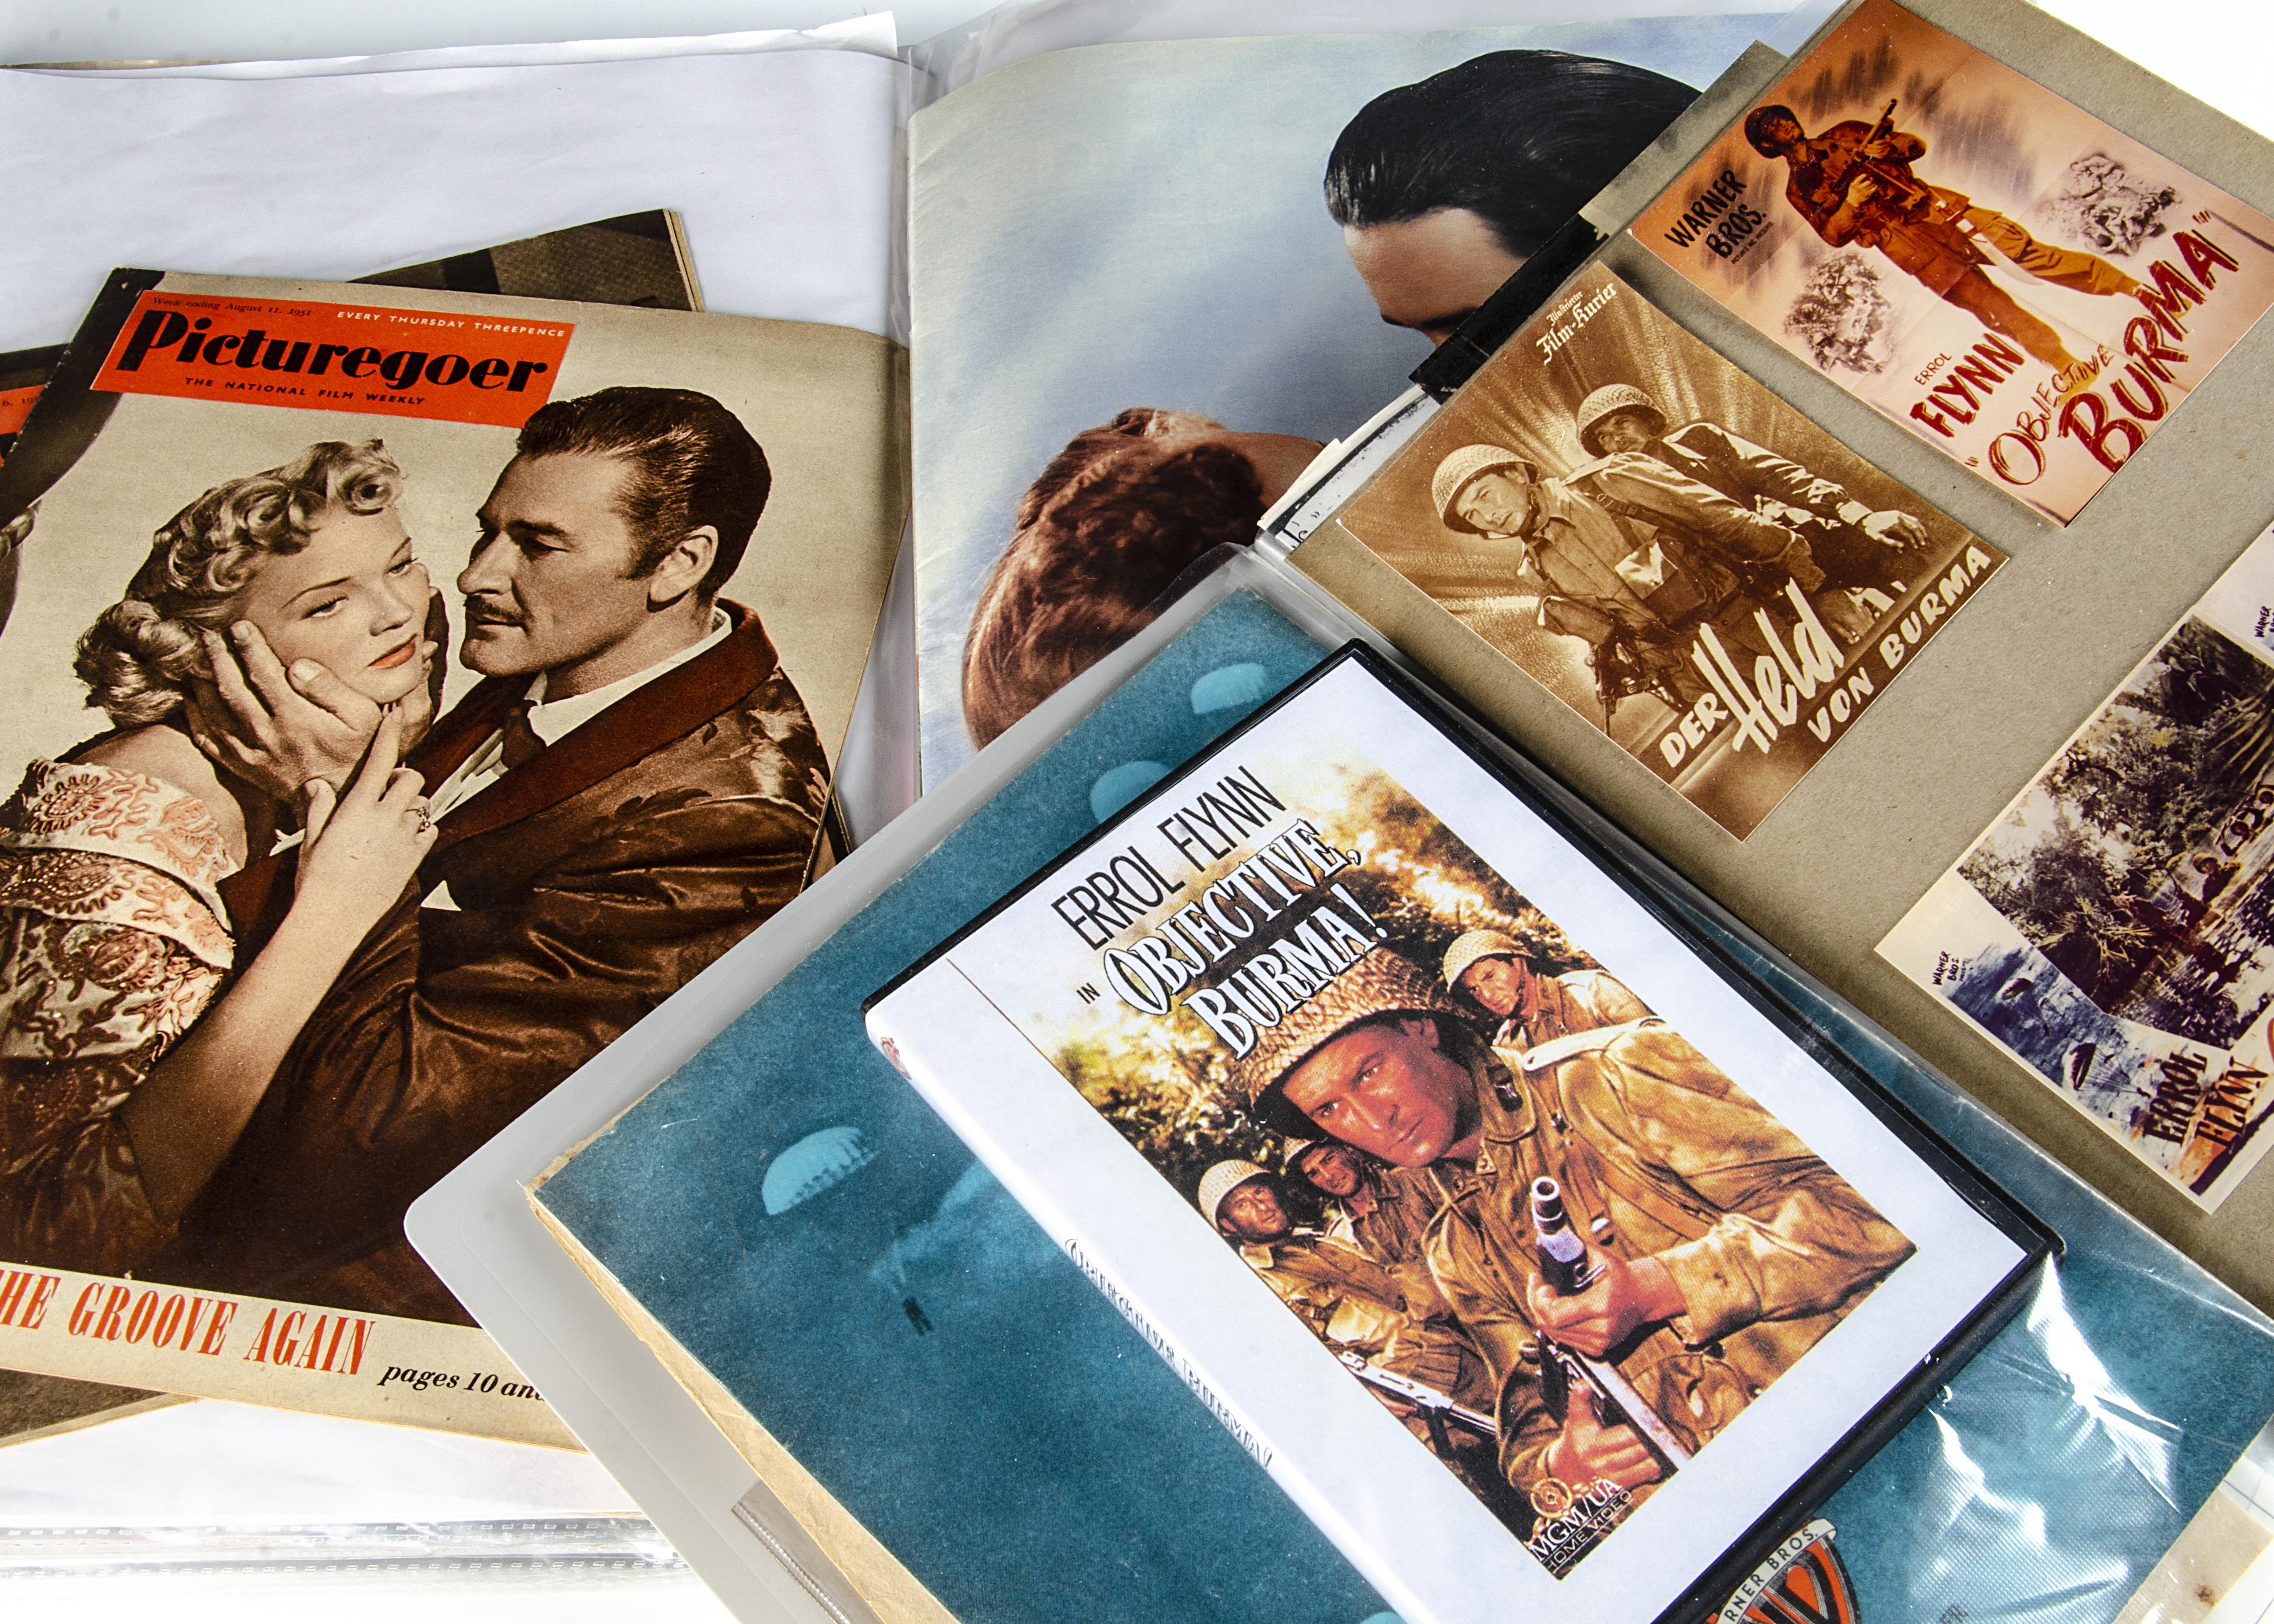 Errol Flynn / Objective Burma, two large folders containing a mass of information and memorabilia